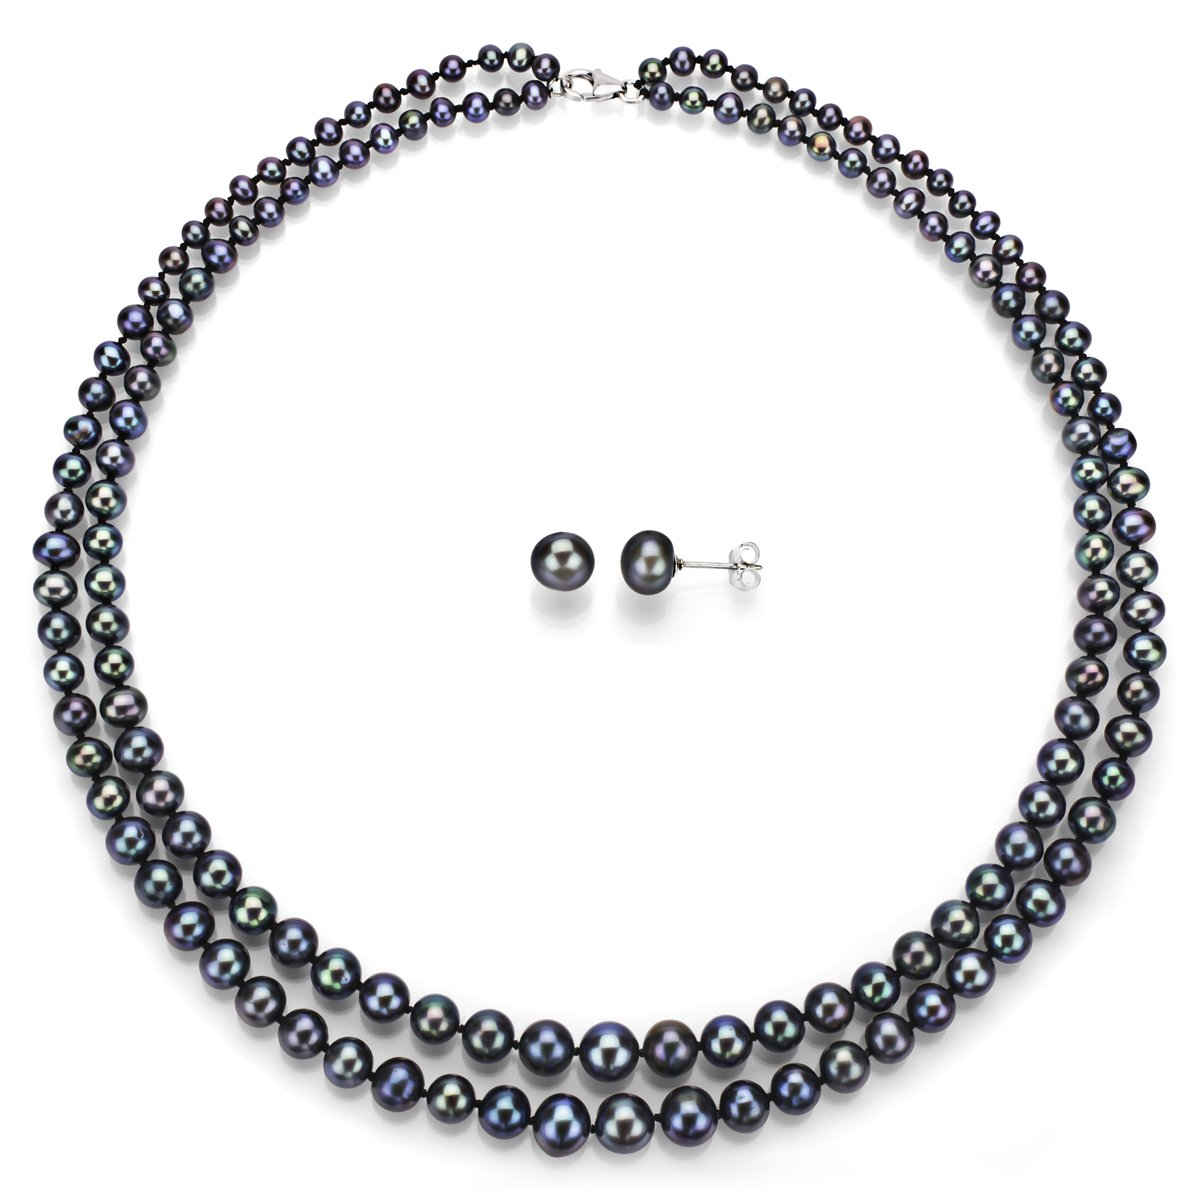 Sterling Silver Graduated 4-8.5mm 2rows Dyed-black Freshwater Cultured Pearl Necklace and Stud Earrings